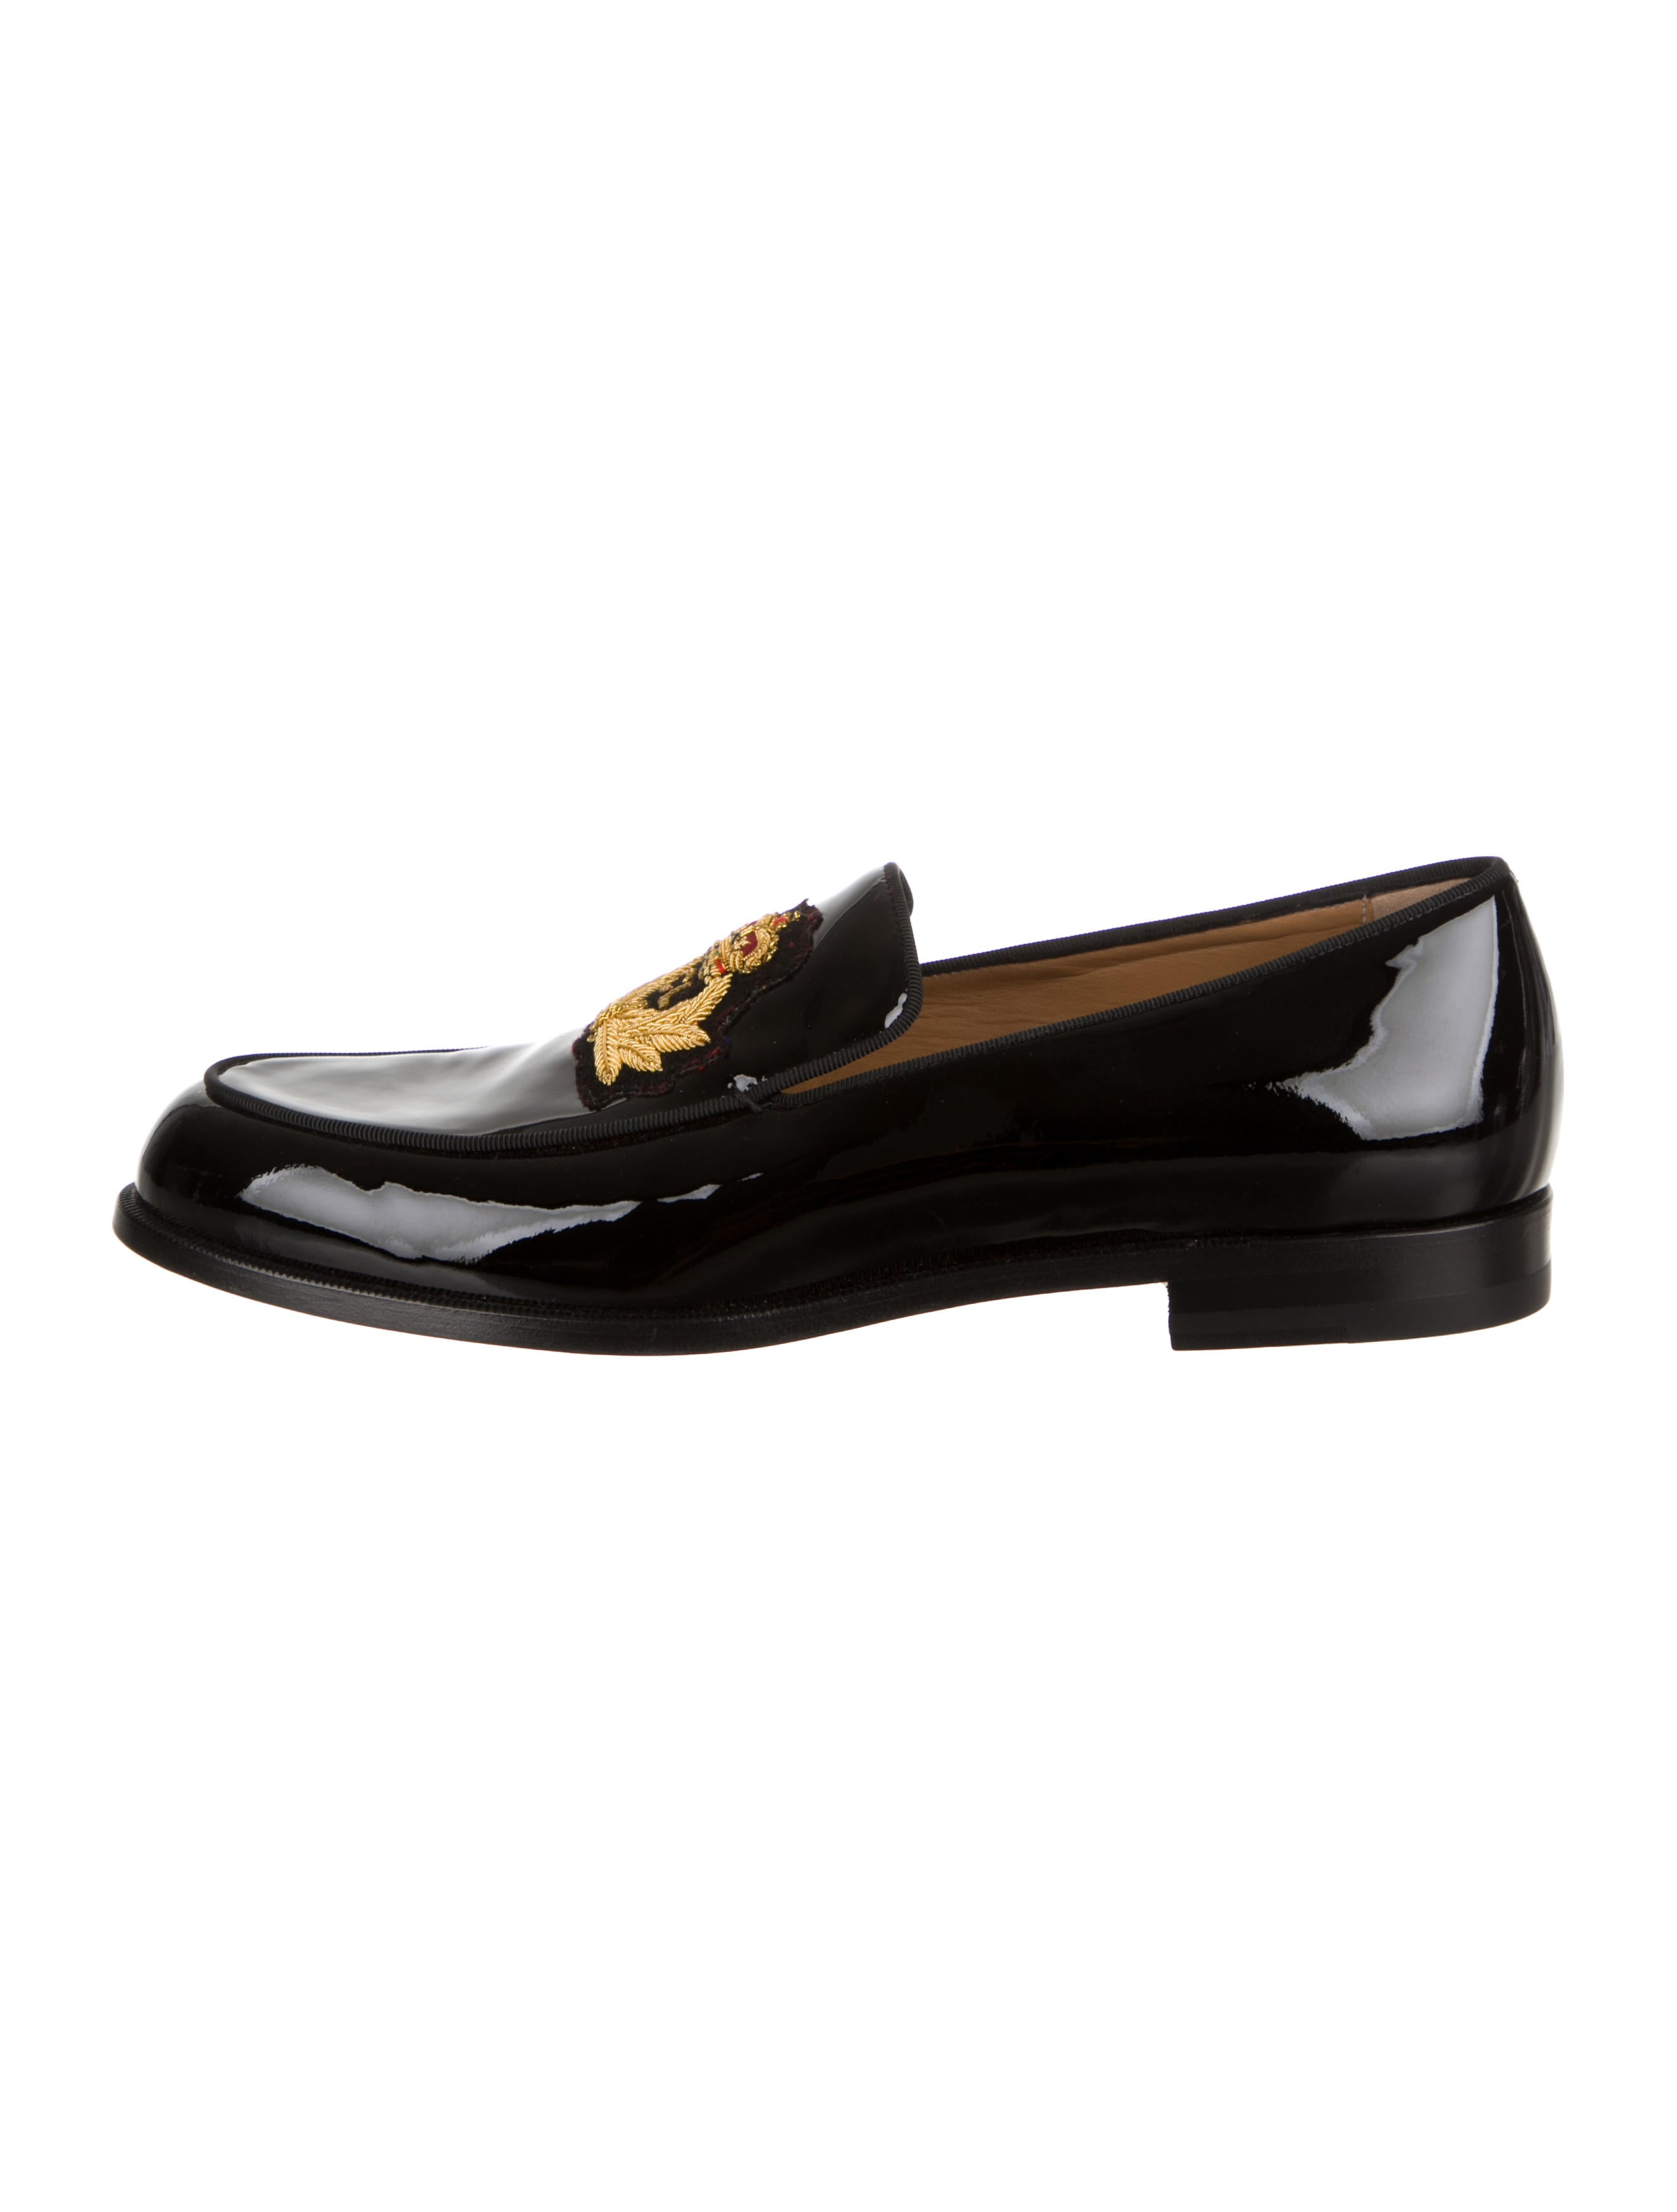 c5fc29aa867d Christian Louboutin Laperouza Patent Leather Loafers - Shoes ...